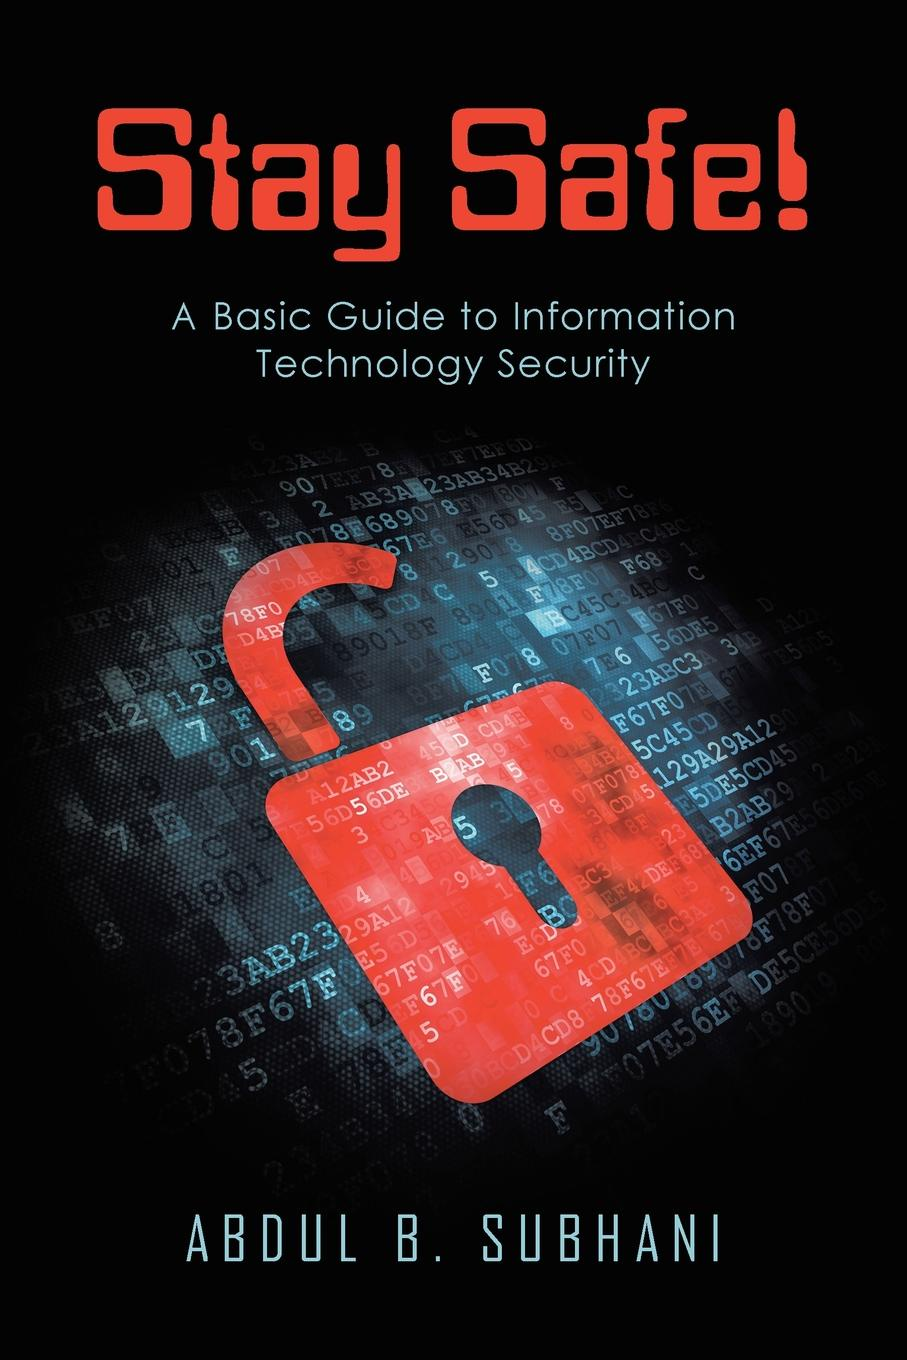 Abdul B. Subhani Stay Safe.. A Basic Guide to Information Technology Security